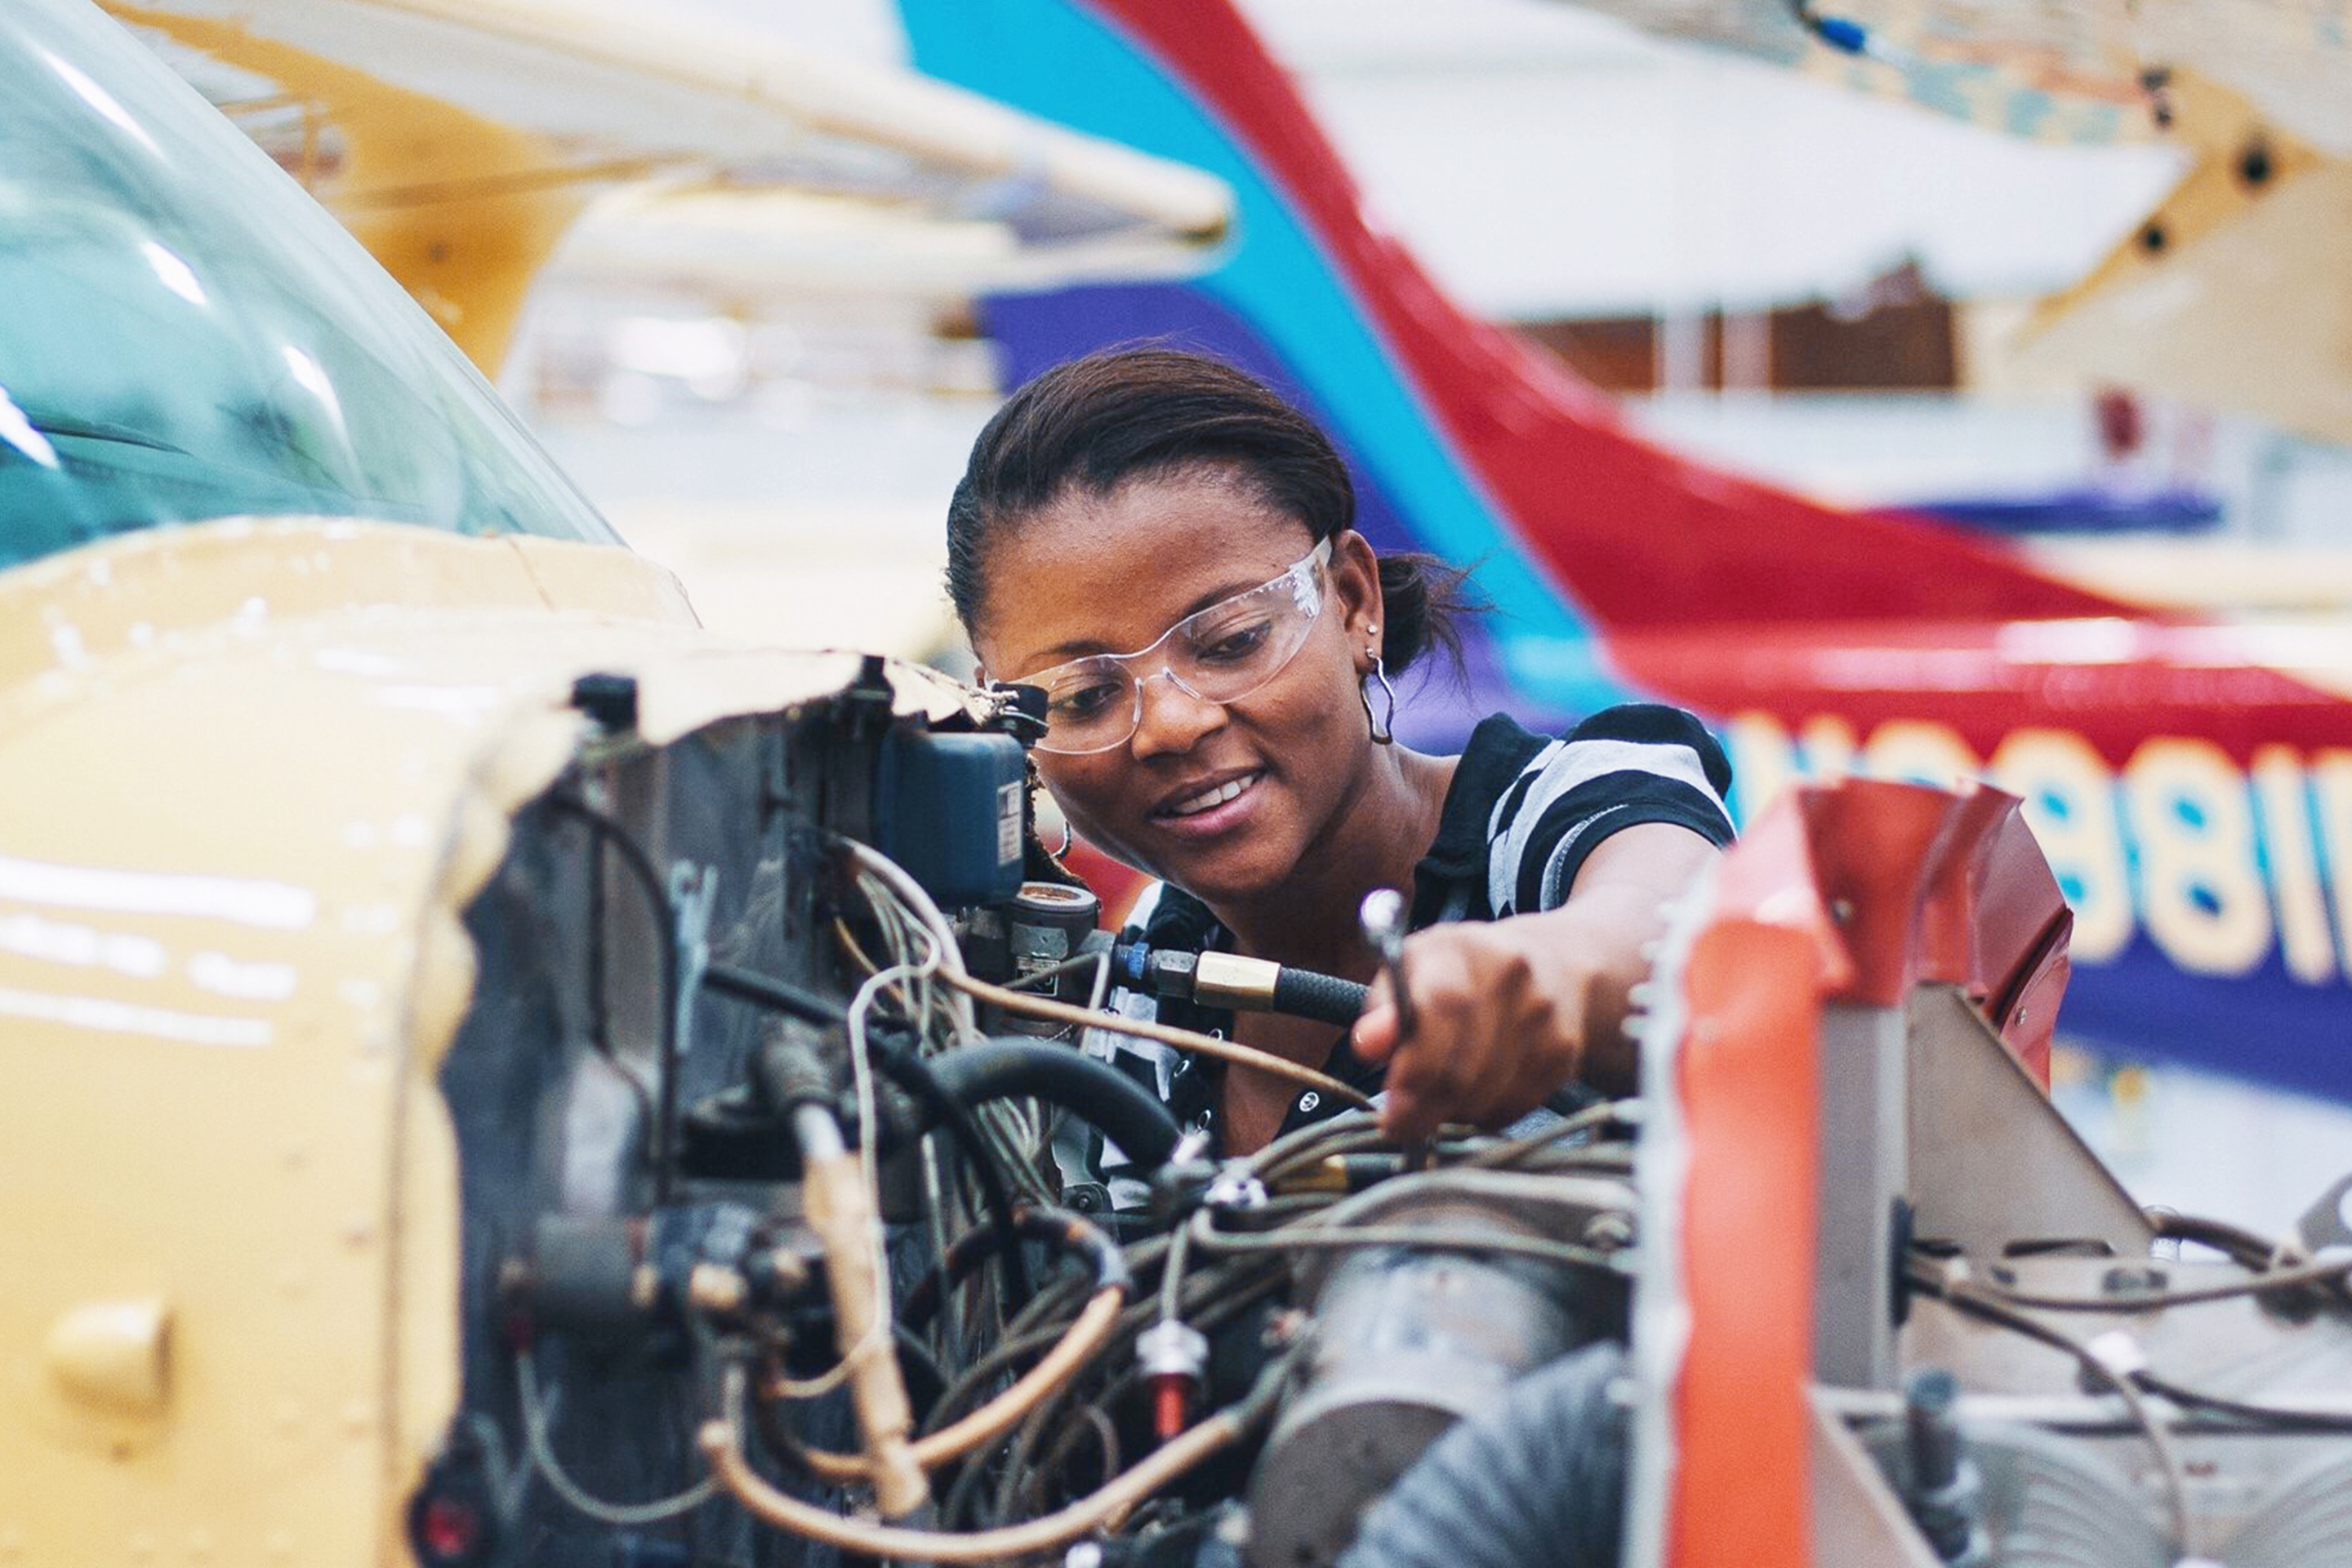 Image of a female mechanic using a wrench working on an aircraft engine